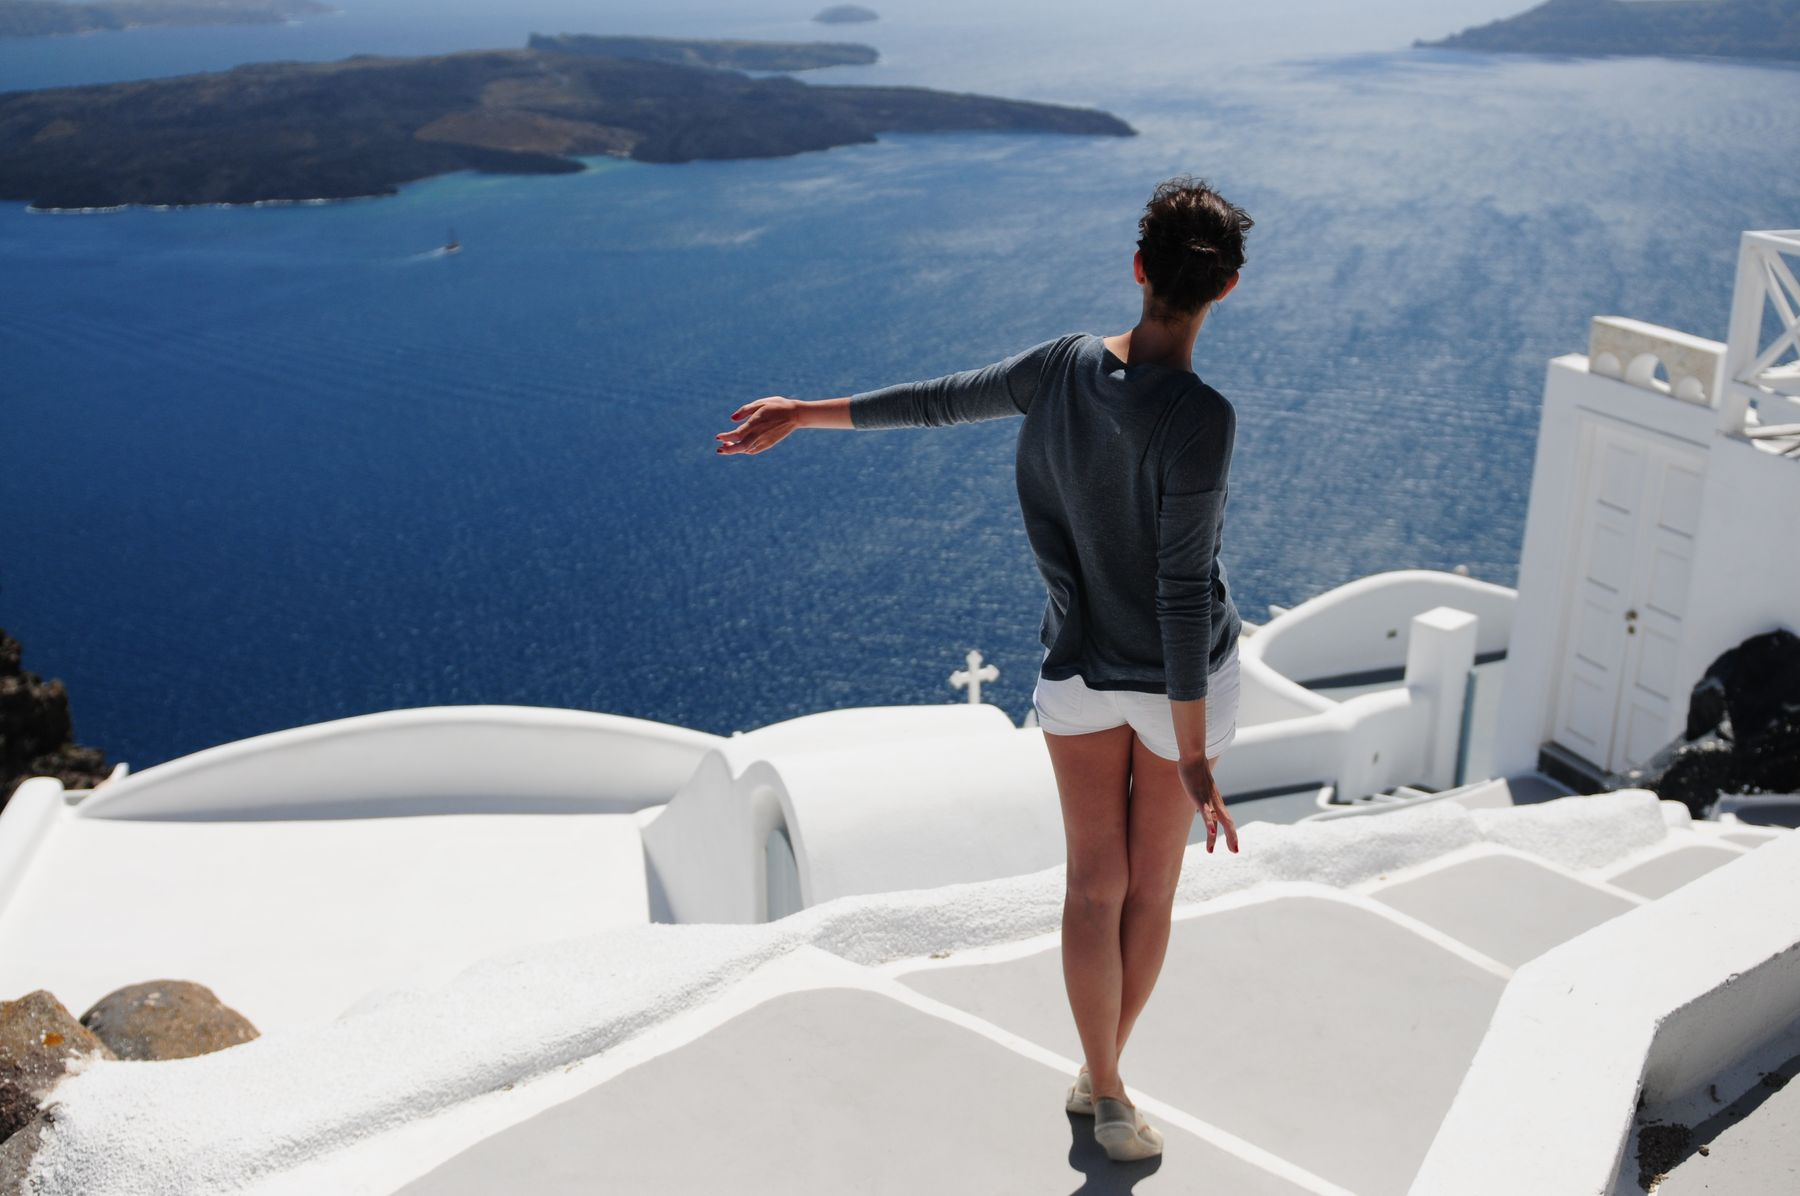 Solo traveler look out at the water in Greece, which is among the best places to travel alone